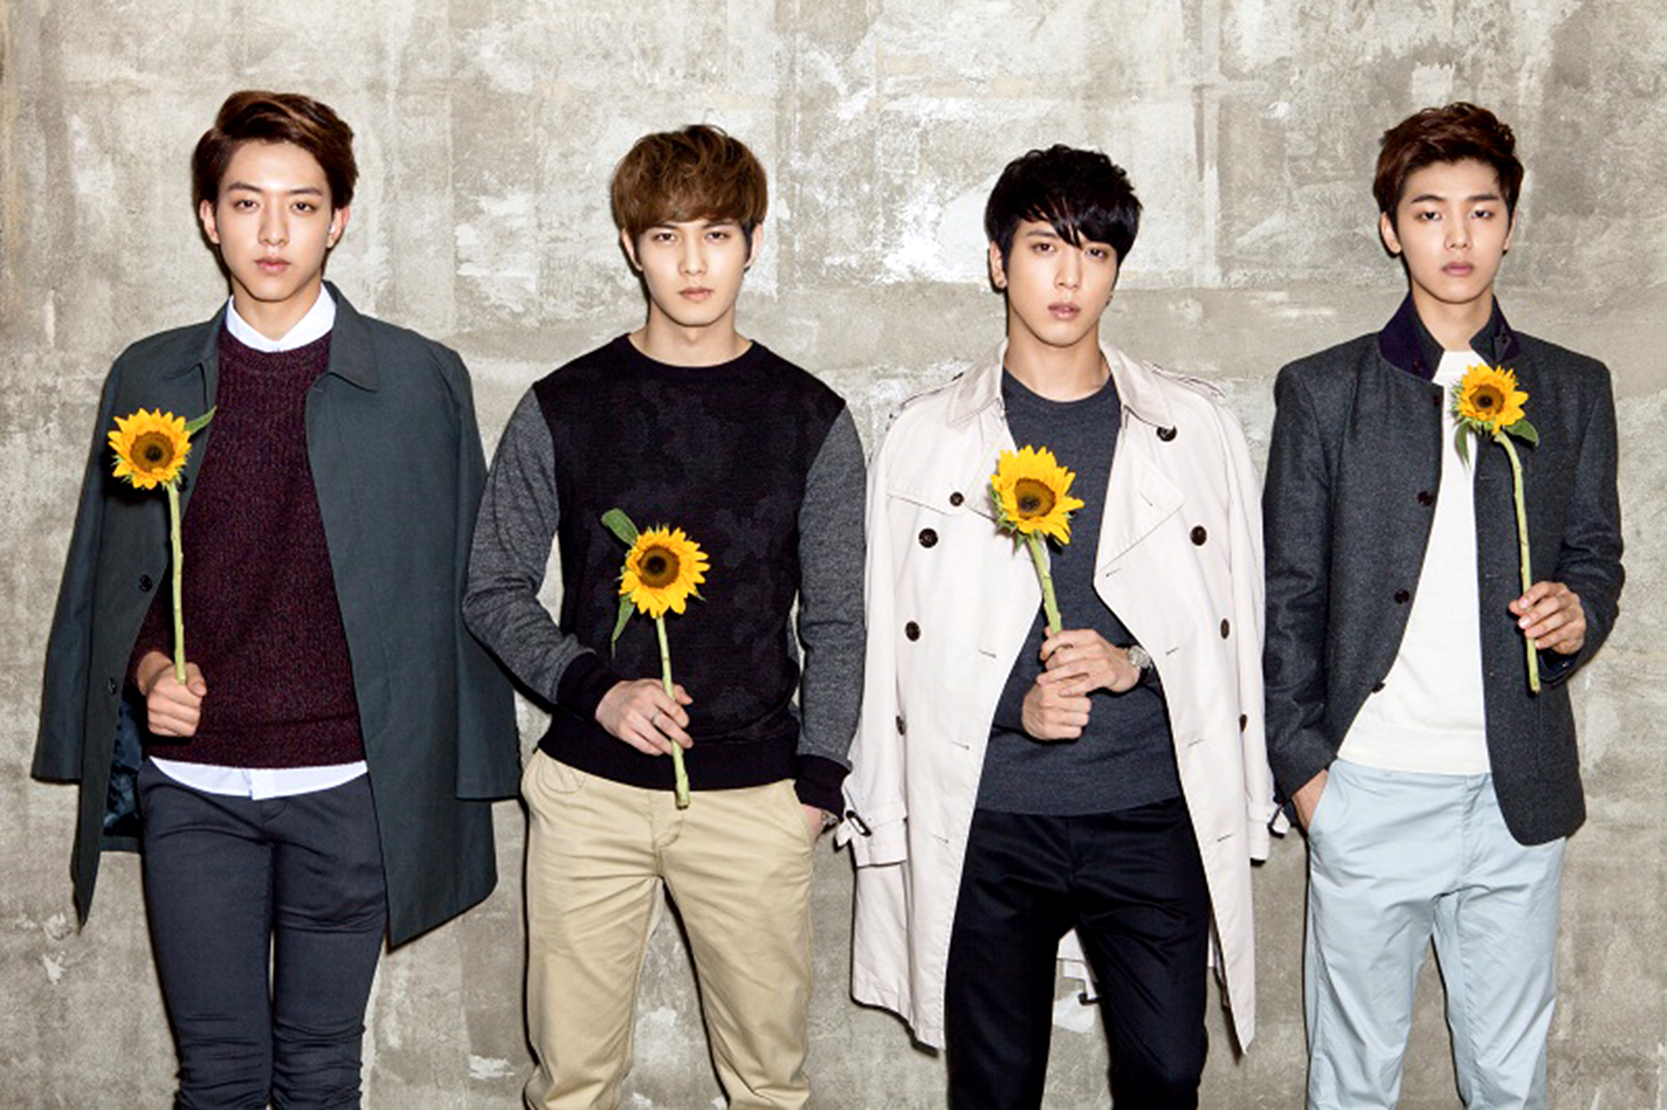 CNBLUE May Make Comeback With New Album in April